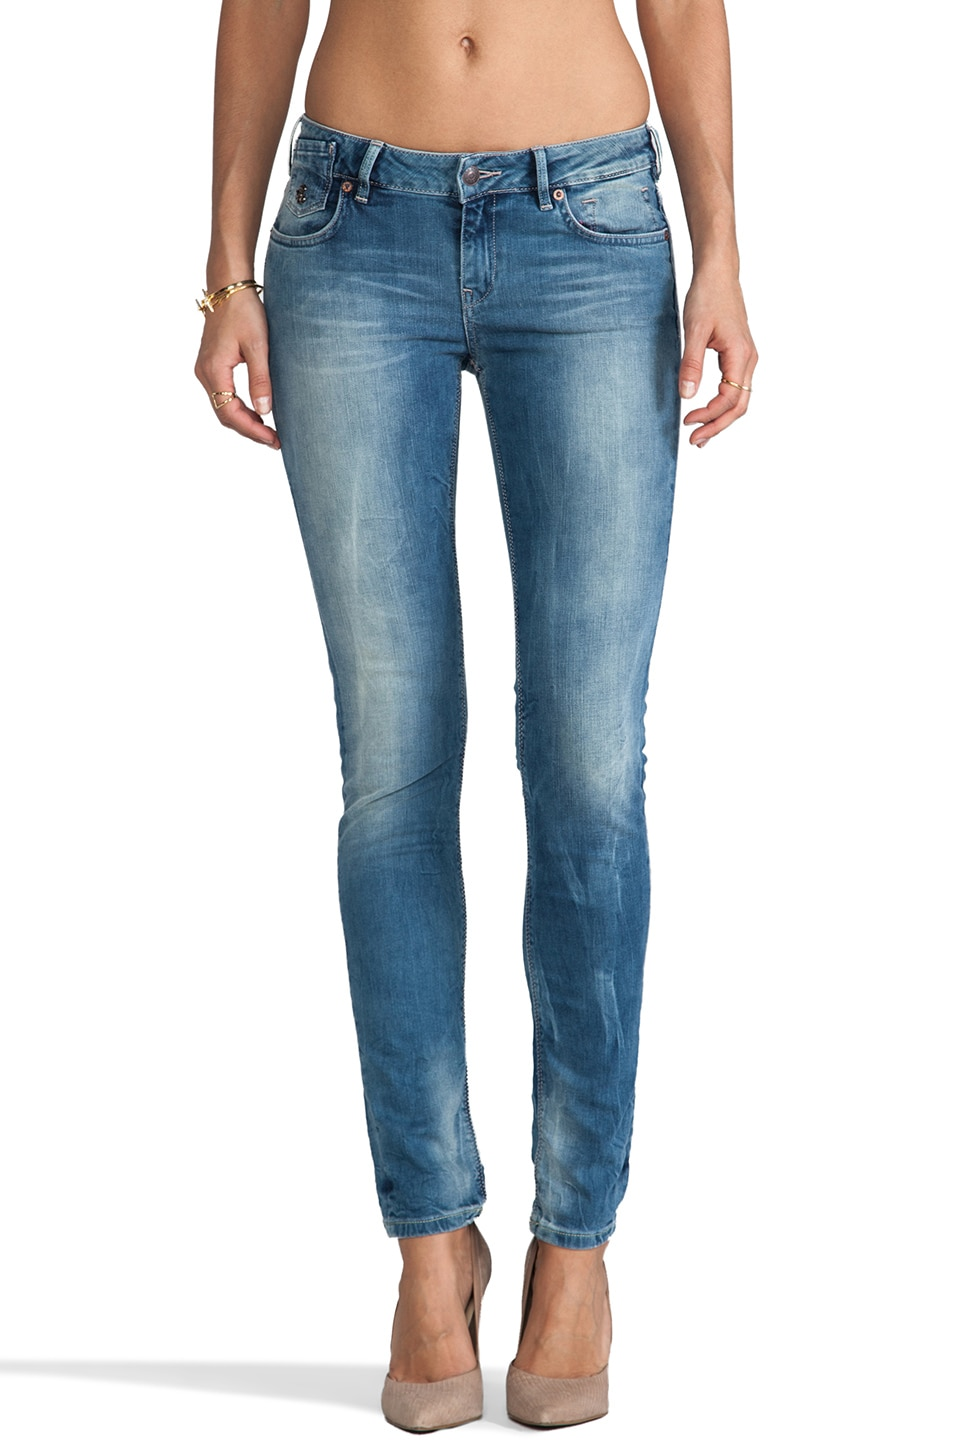 Maison Scotch Parisienne Skinny in Light Denim